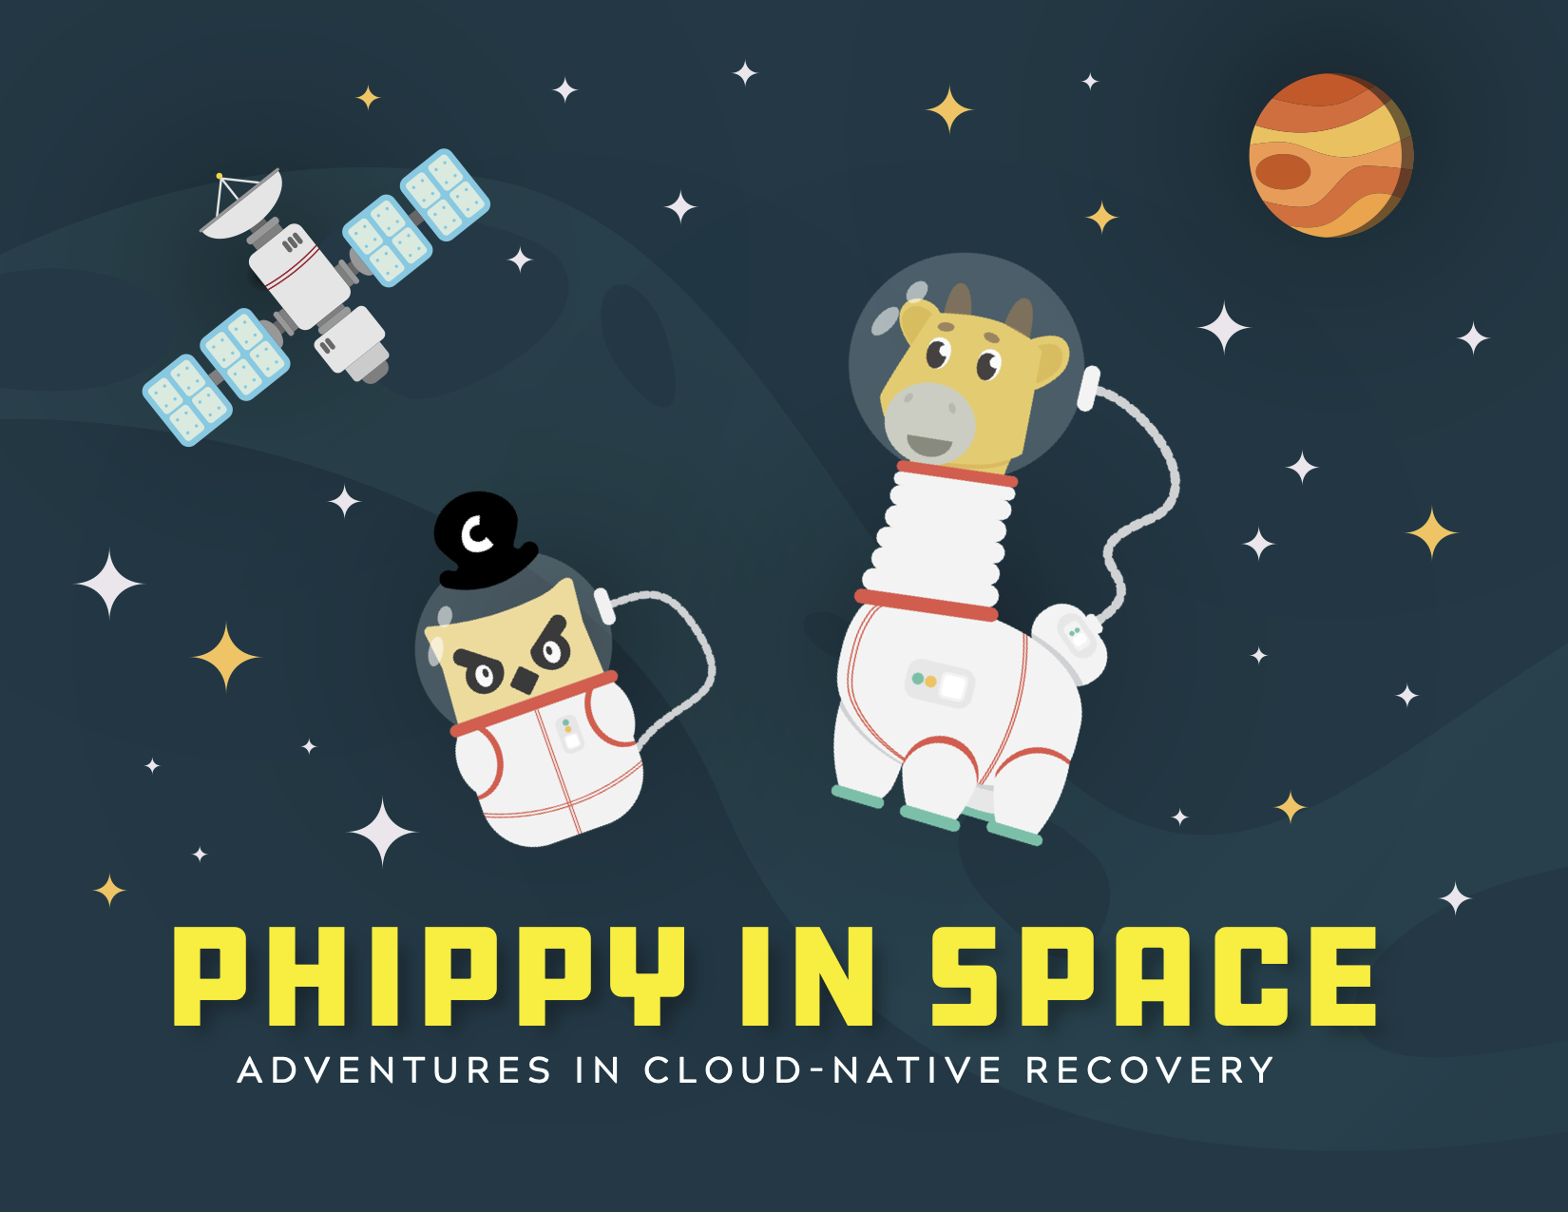 Phippy In space Cover